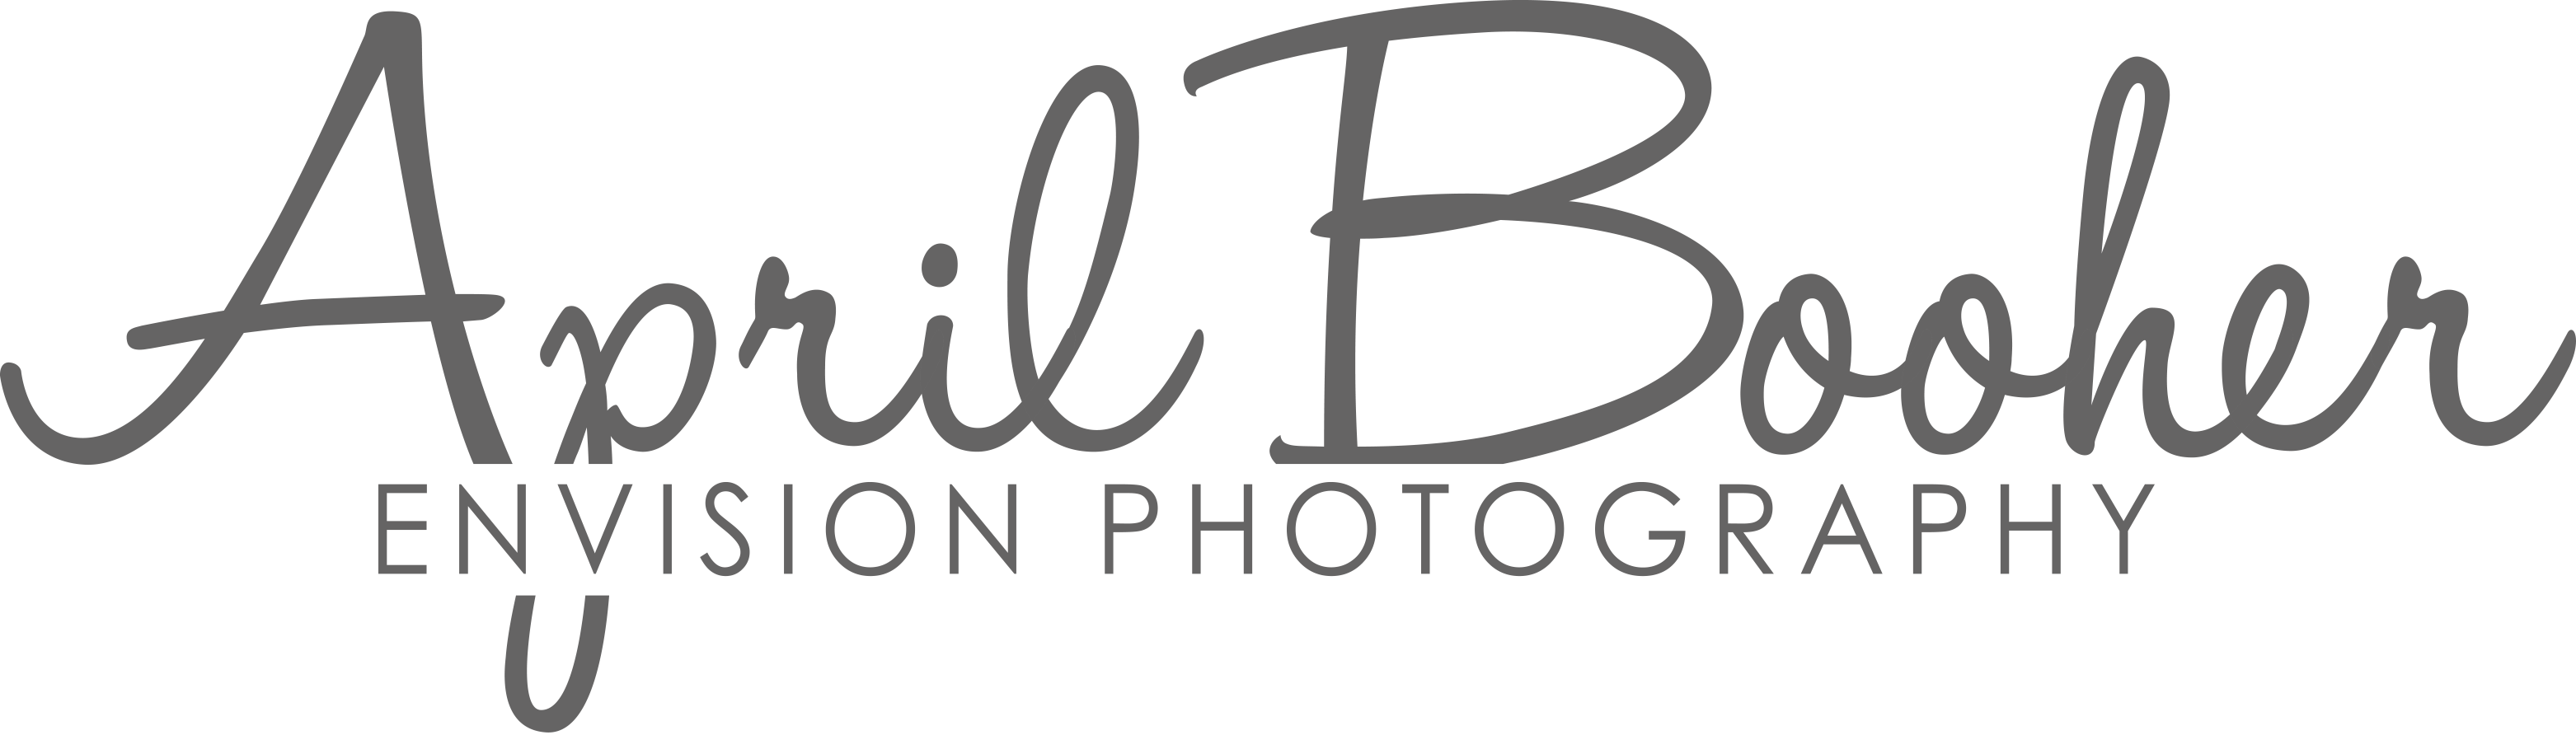 Envision Photography by April Booher